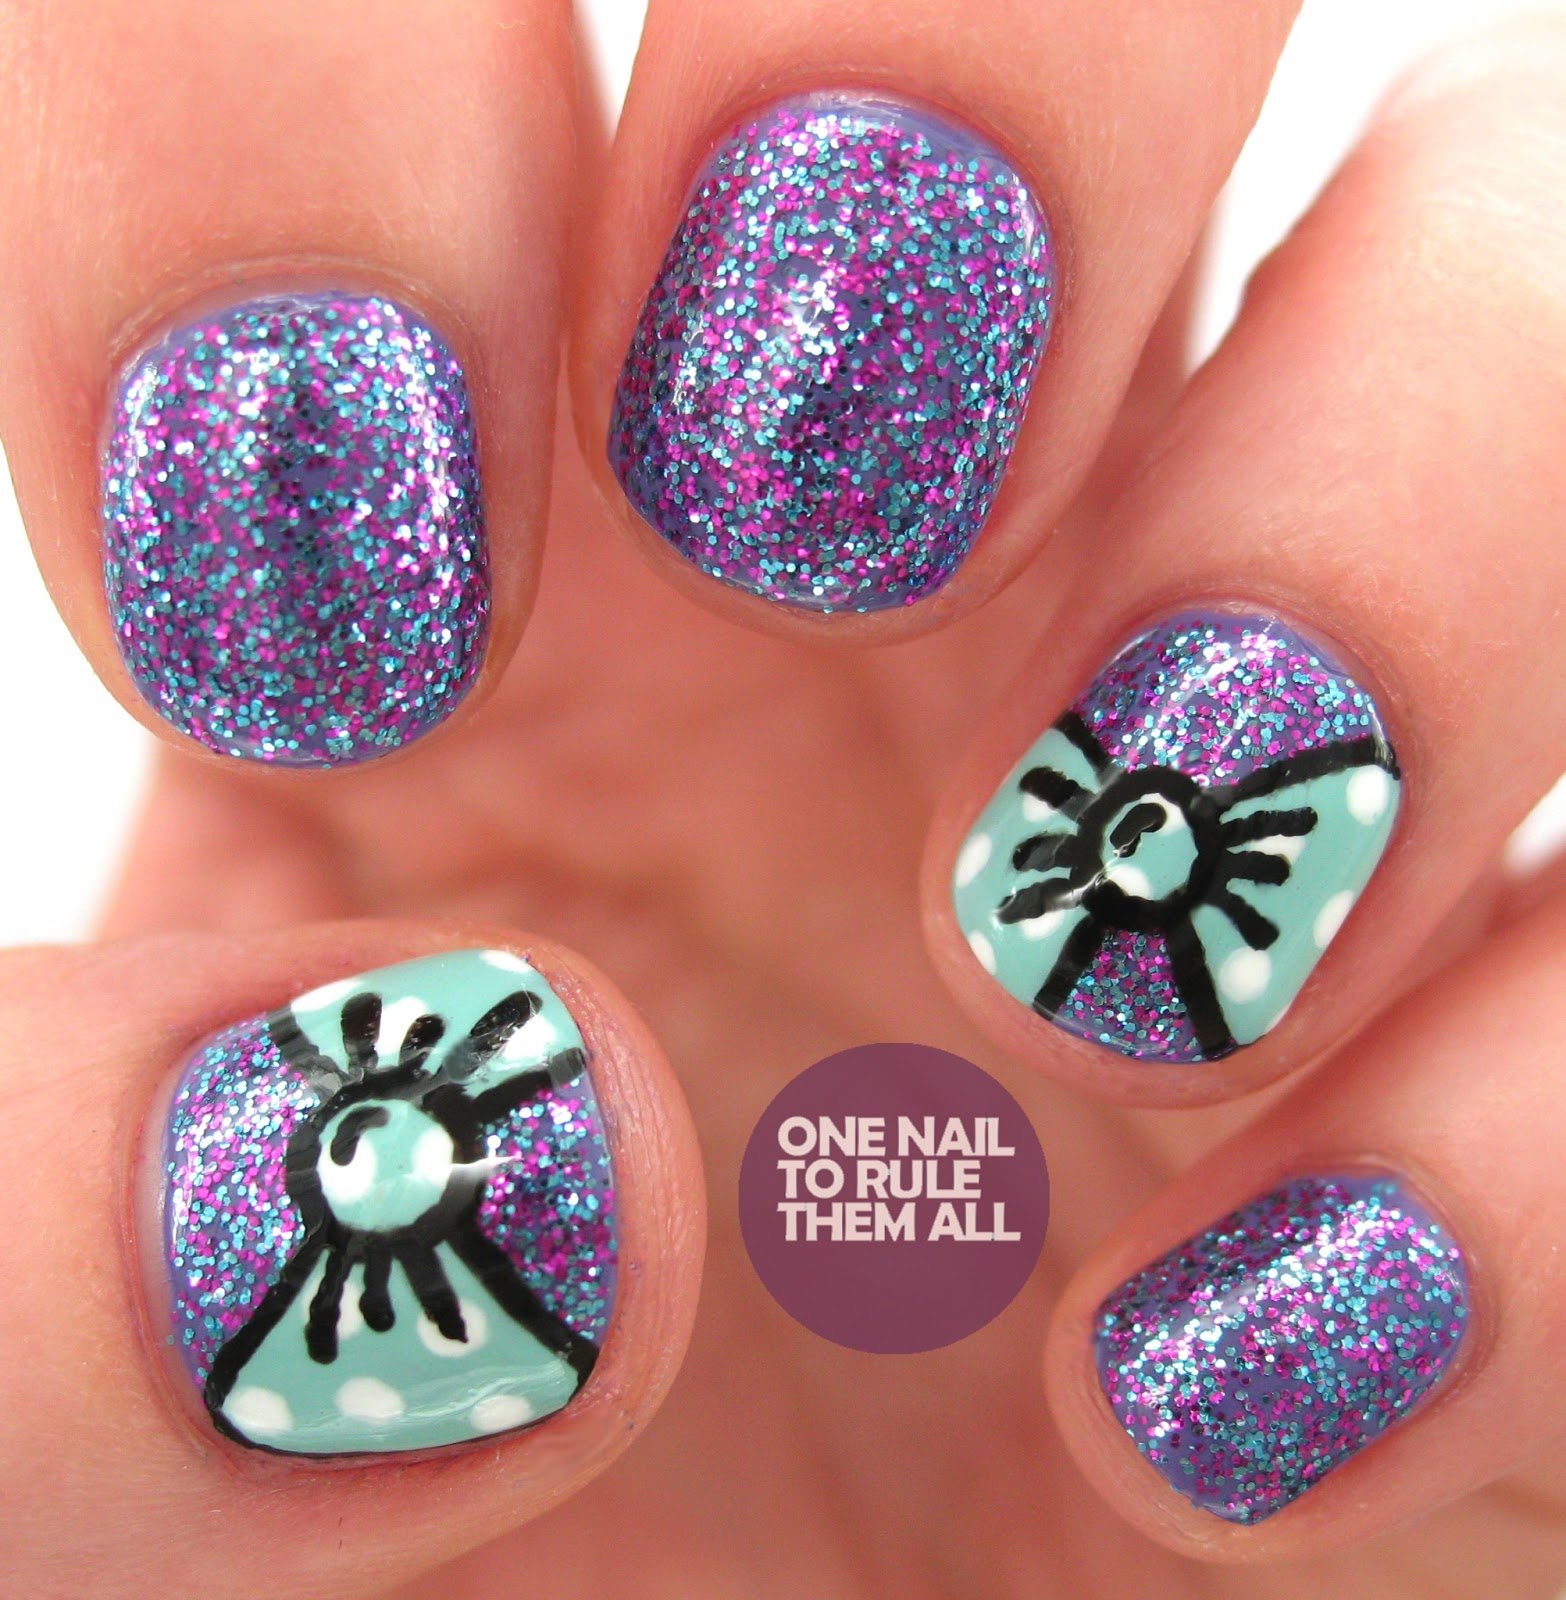 One Nail To Rule Them All: Barry M Nail Art Pens Review